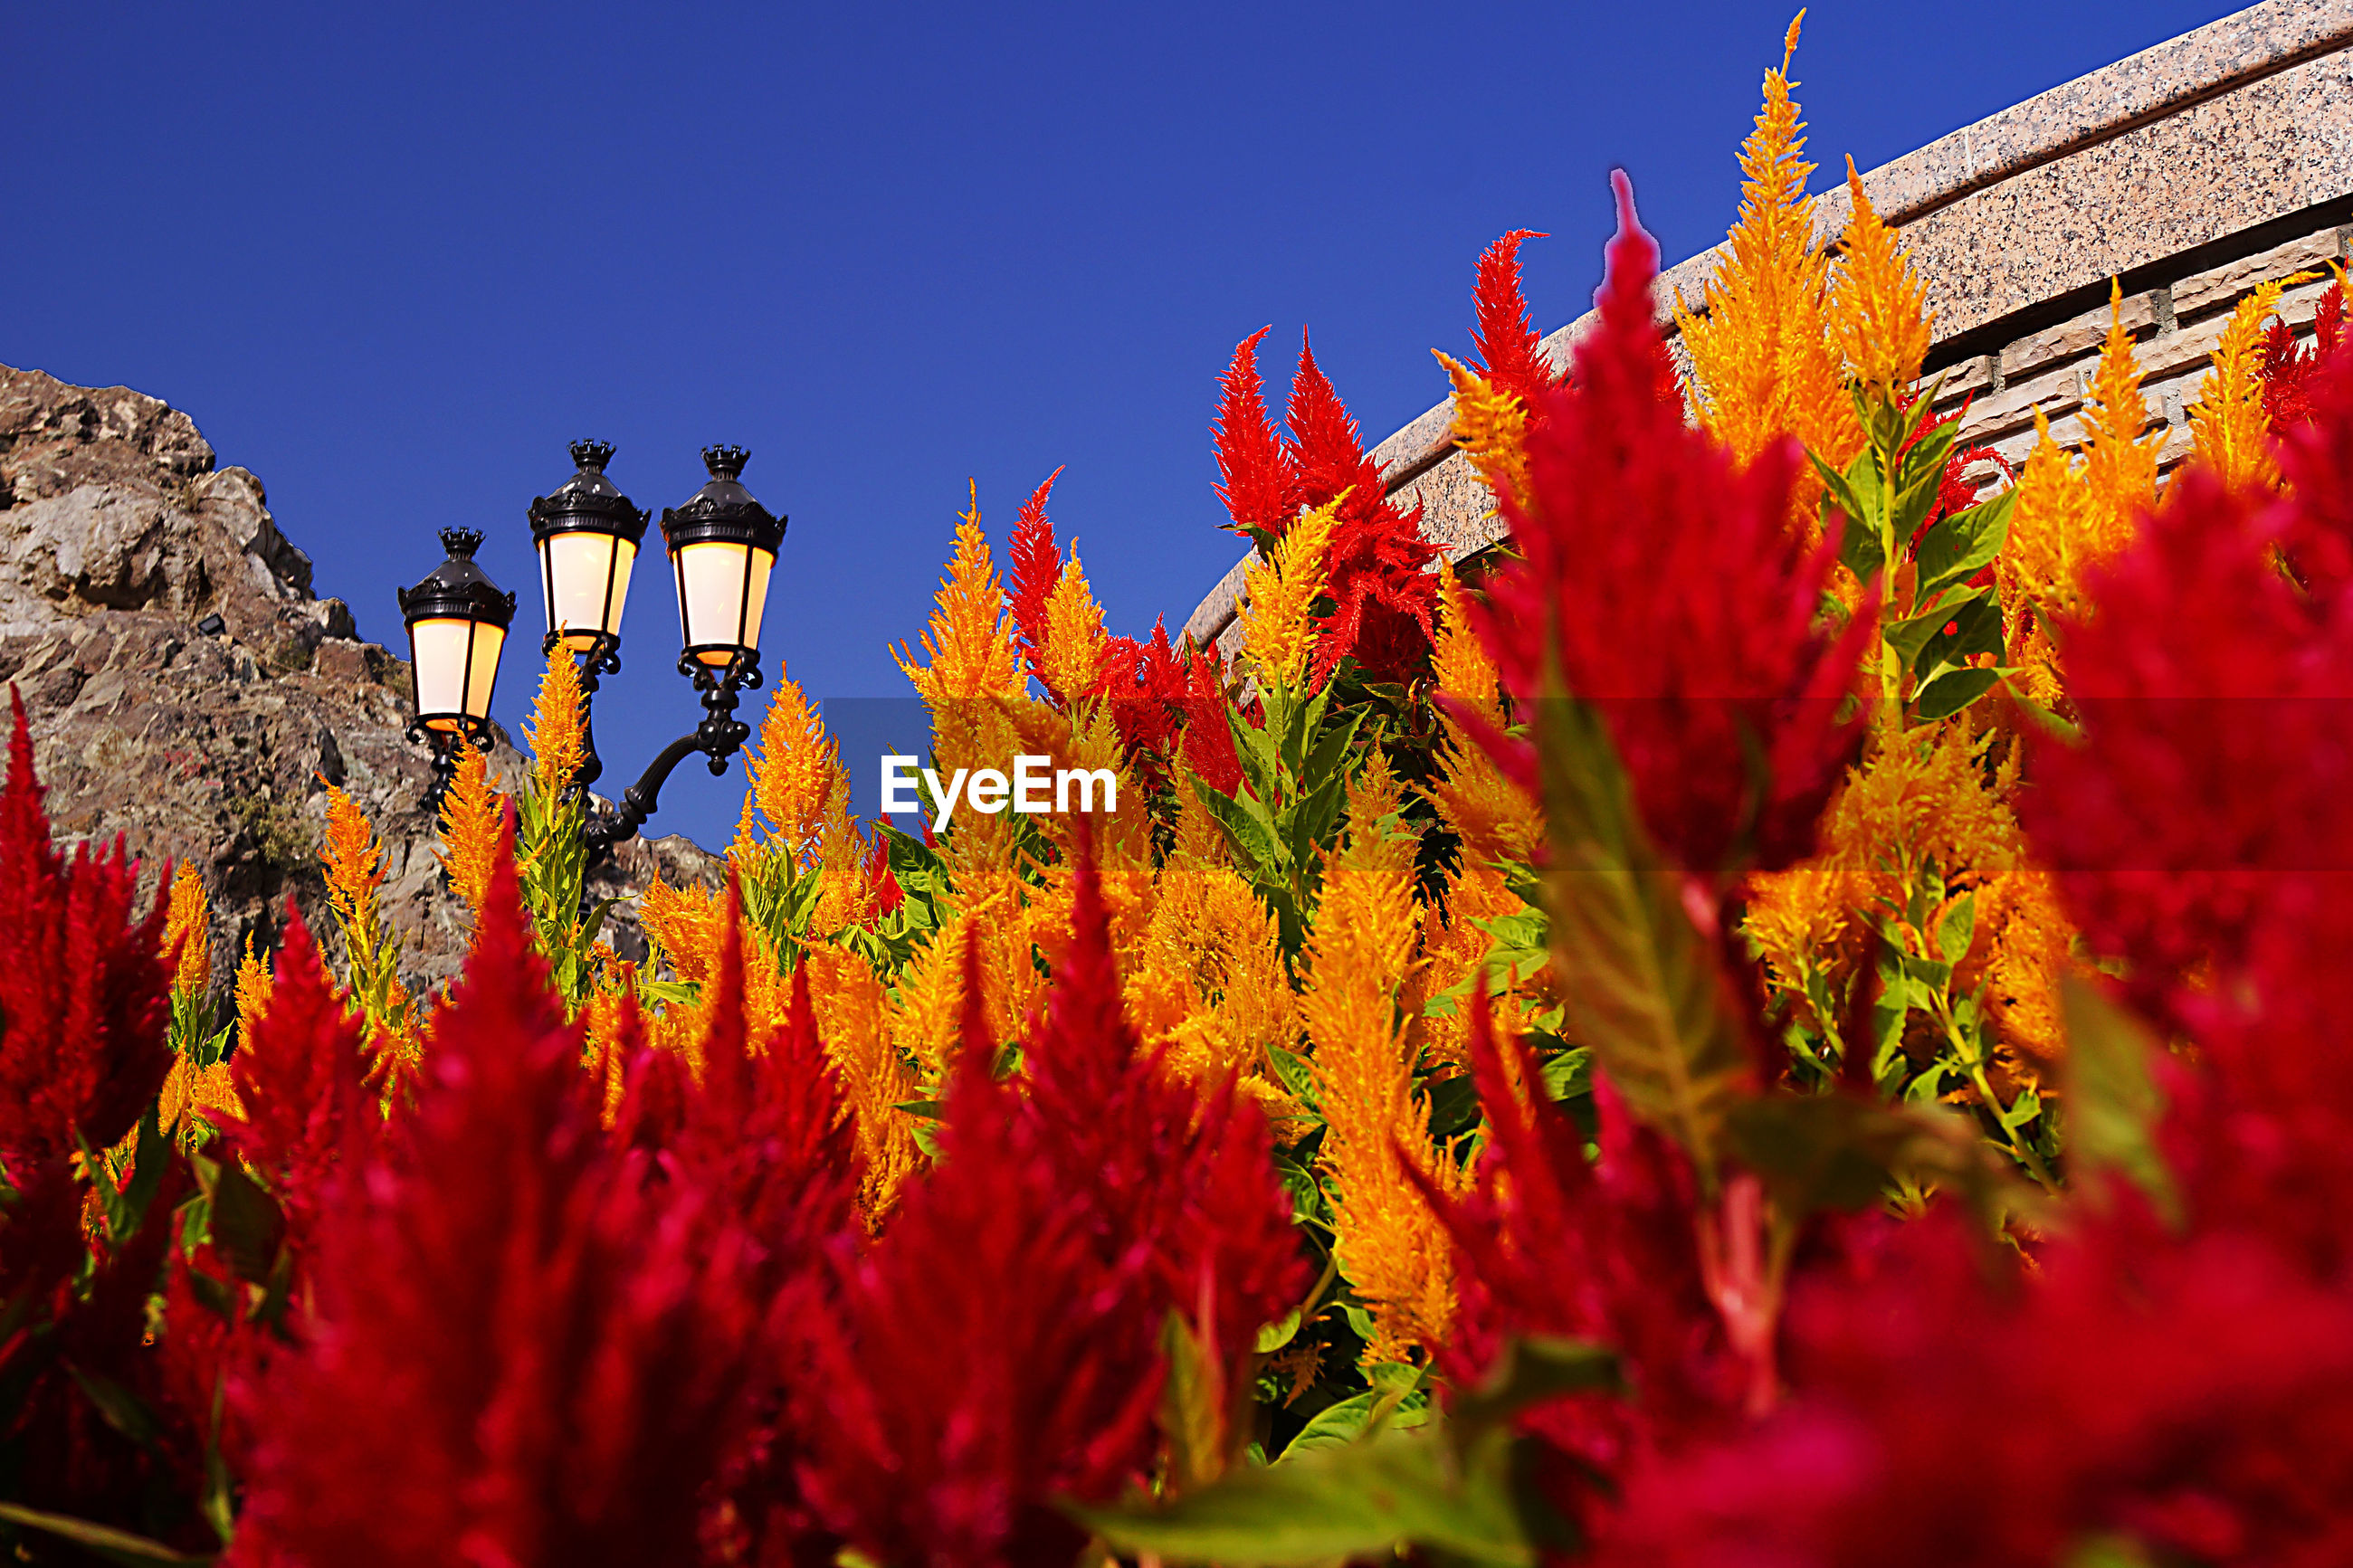 LOW ANGLE VIEW OF RED FLOWERS BLOOMING AGAINST CLEAR BLUE SKY